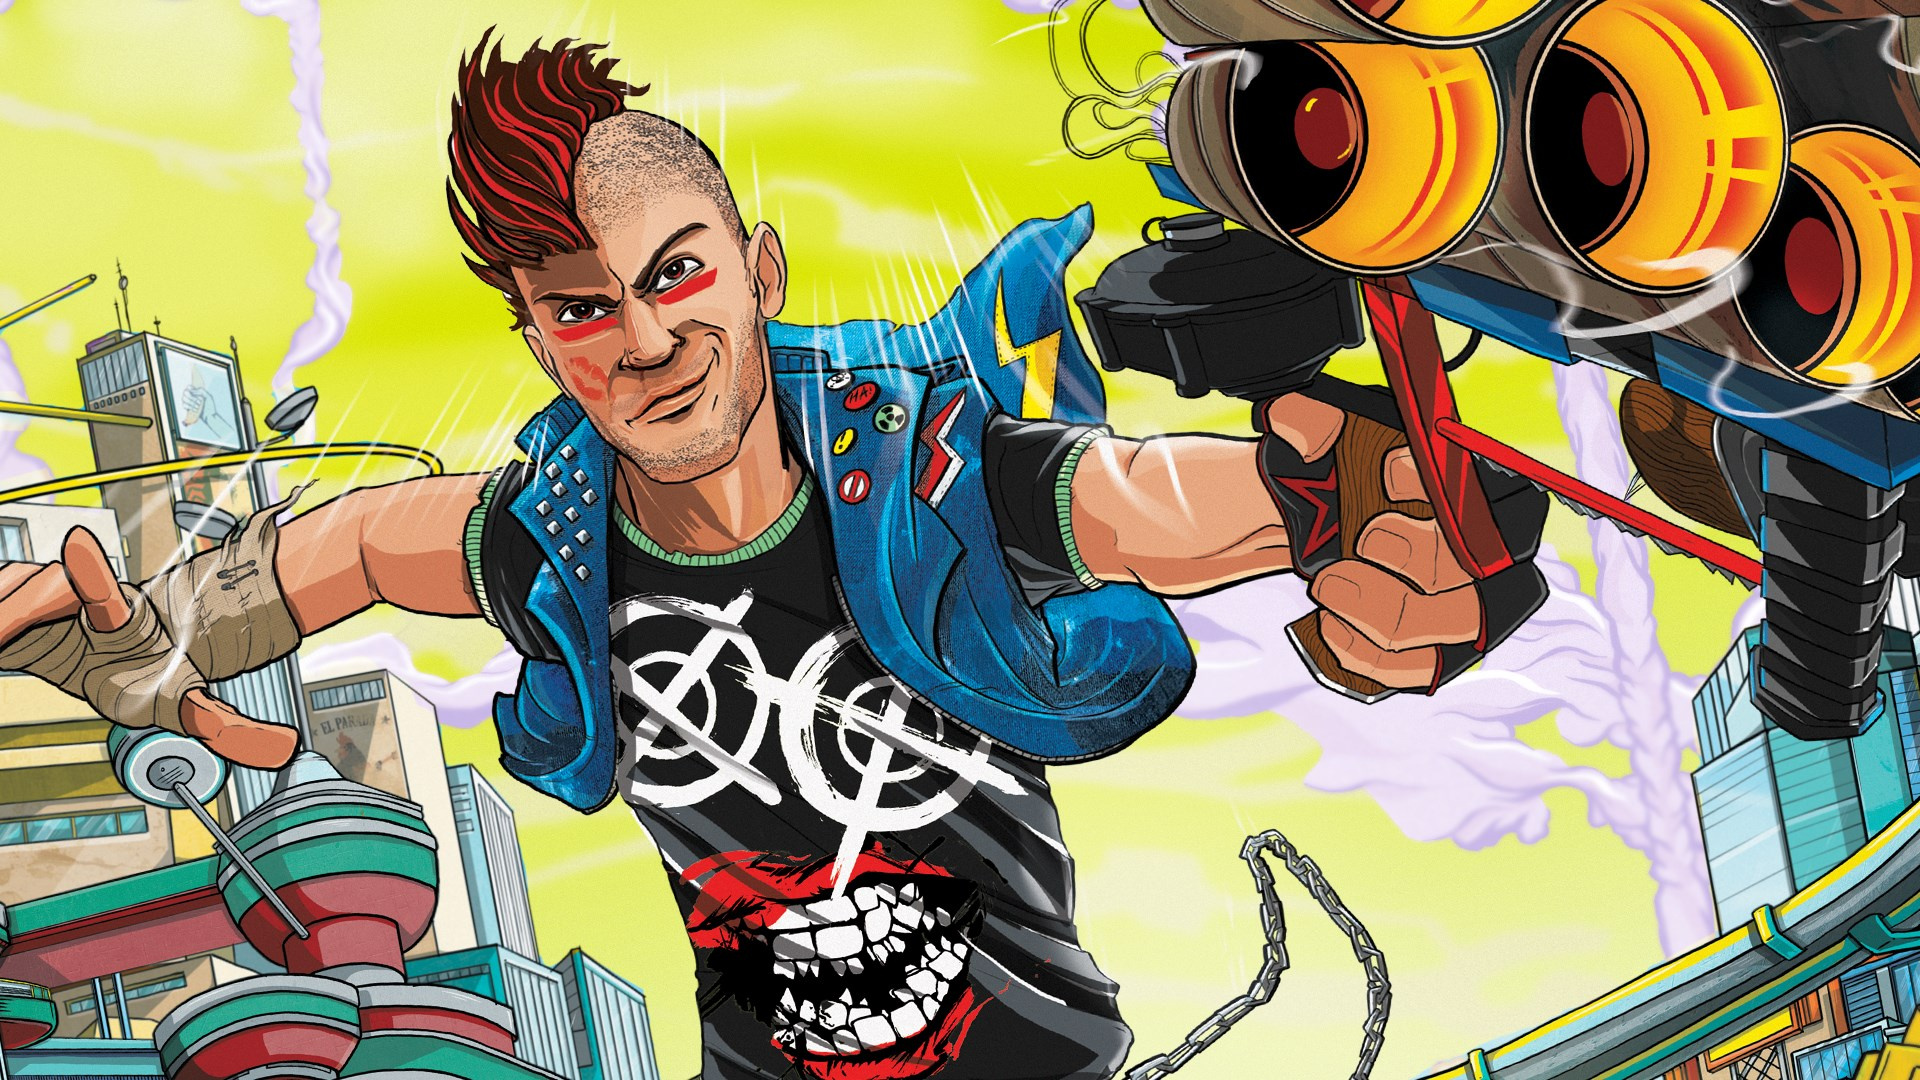 Sunset Overdrive Is Owned by PlayStation, Sony Confirms